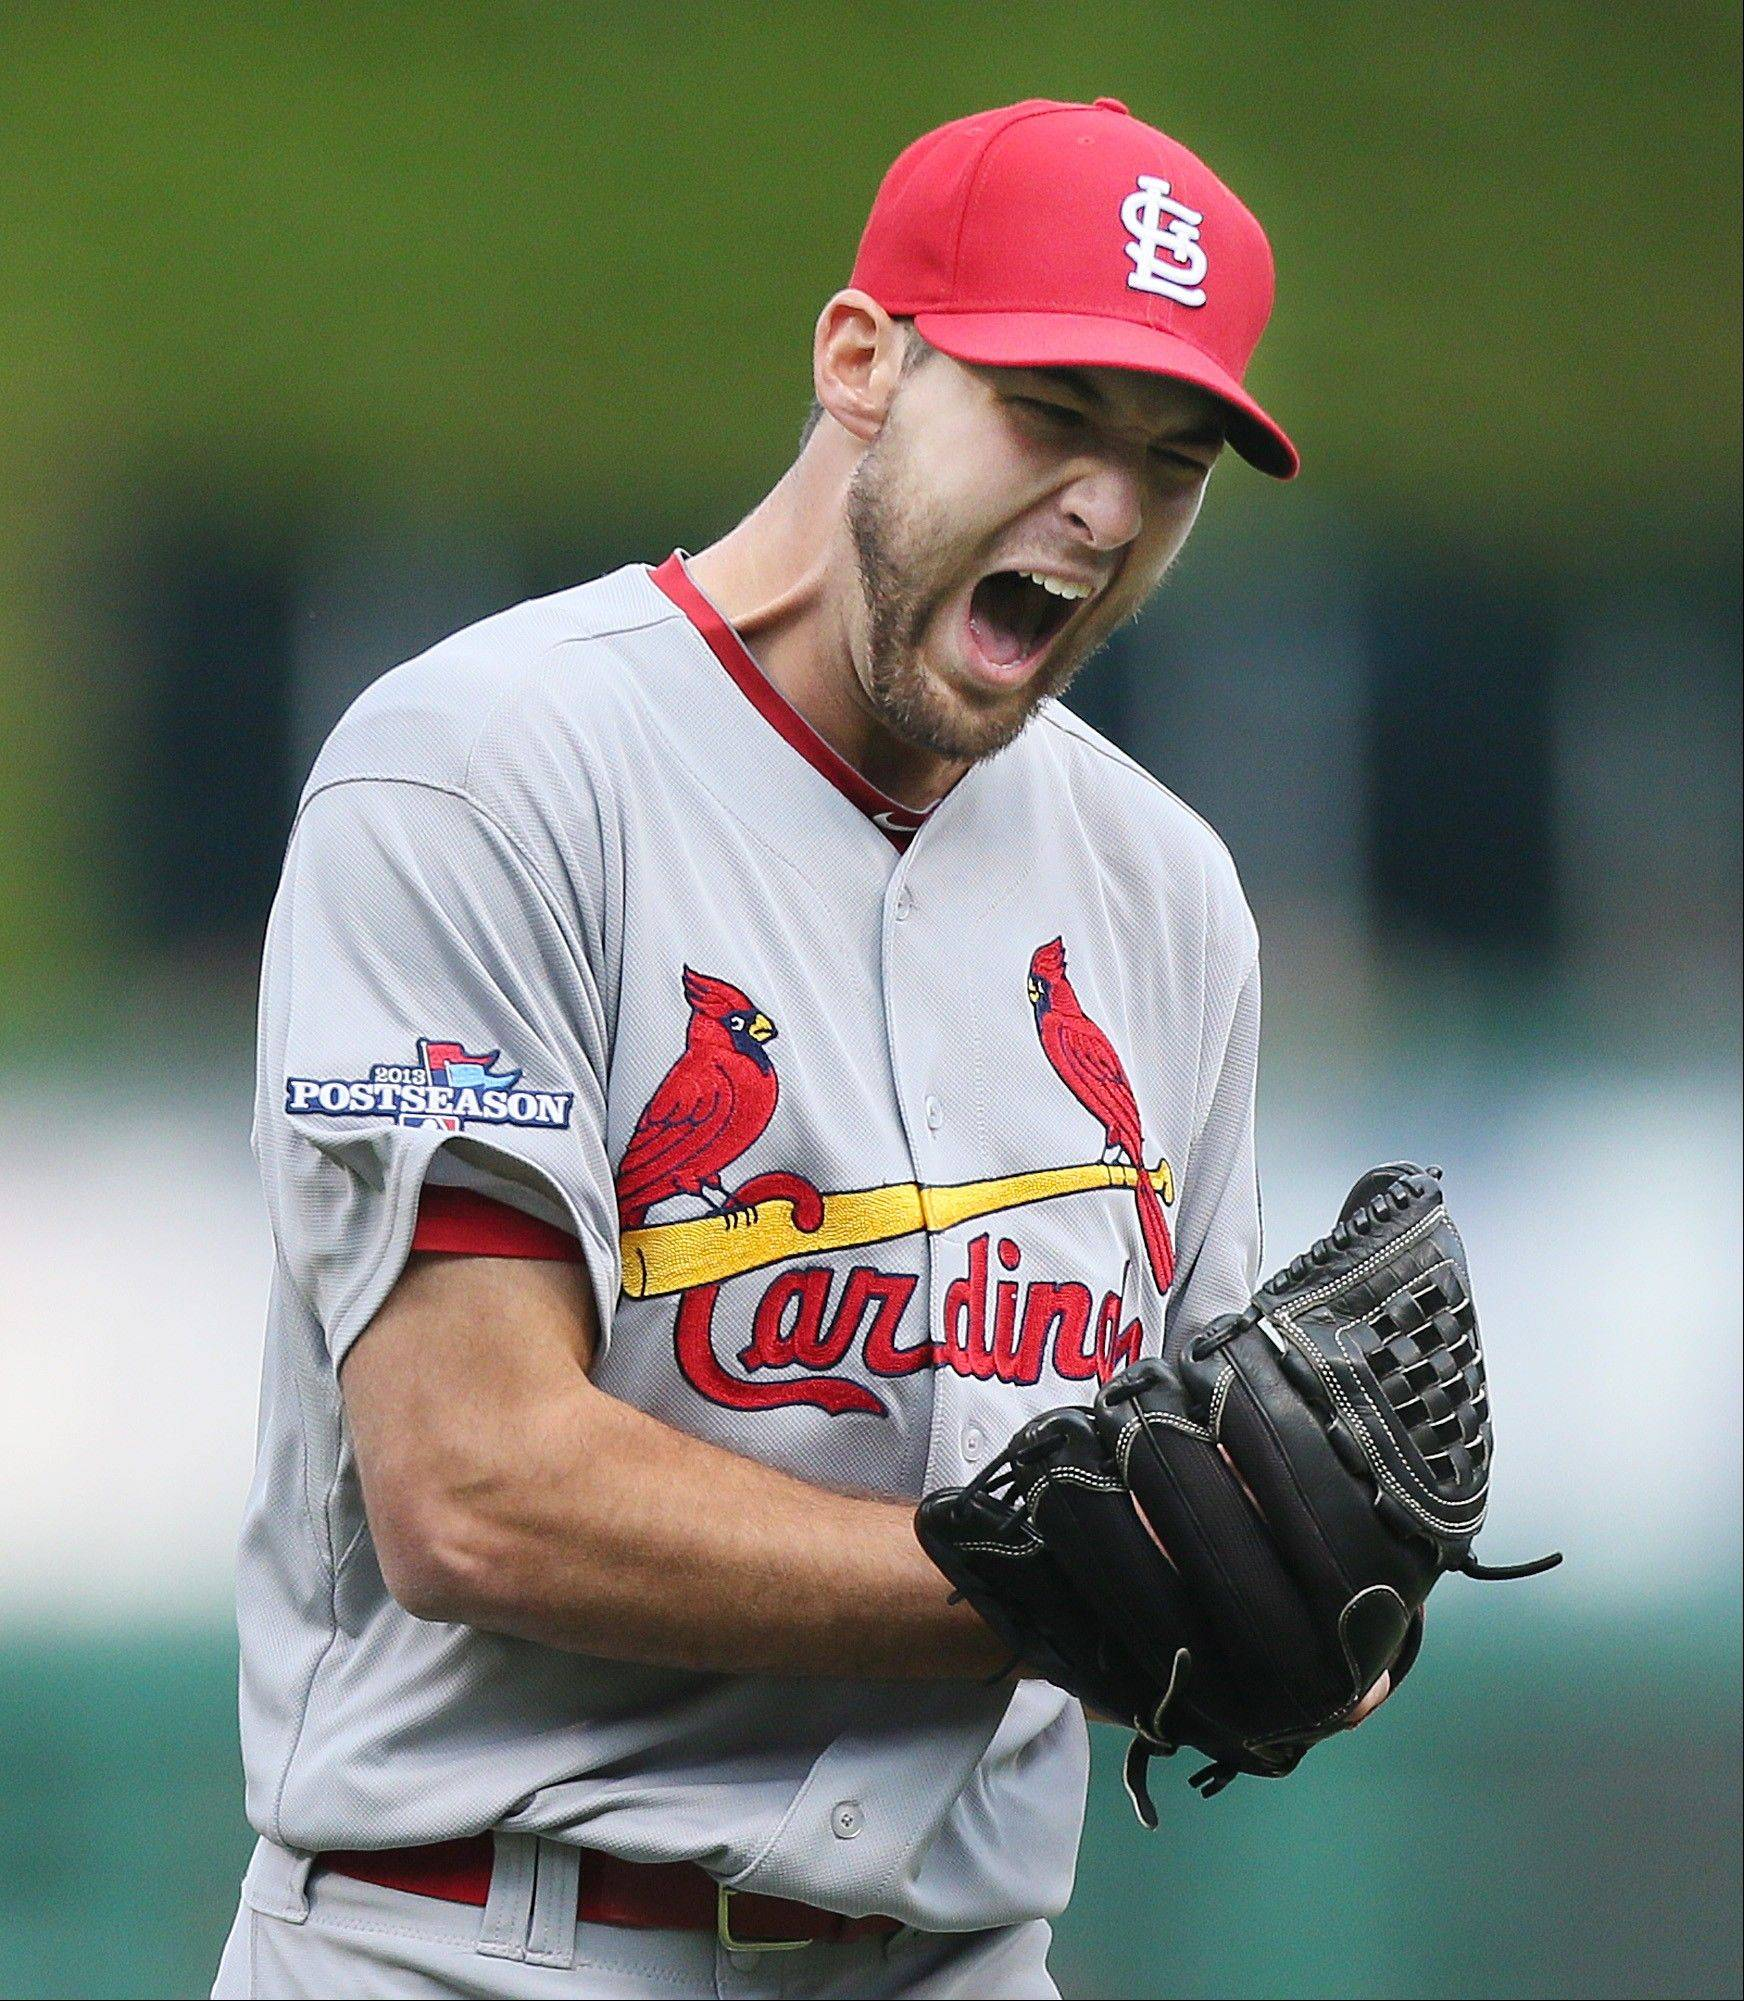 Cardinals starting pitcher Michael Wacha reacts to striking out the Pirates' Starling Marte to end the sixth inning in Game 4 Monday in Pittsburgh